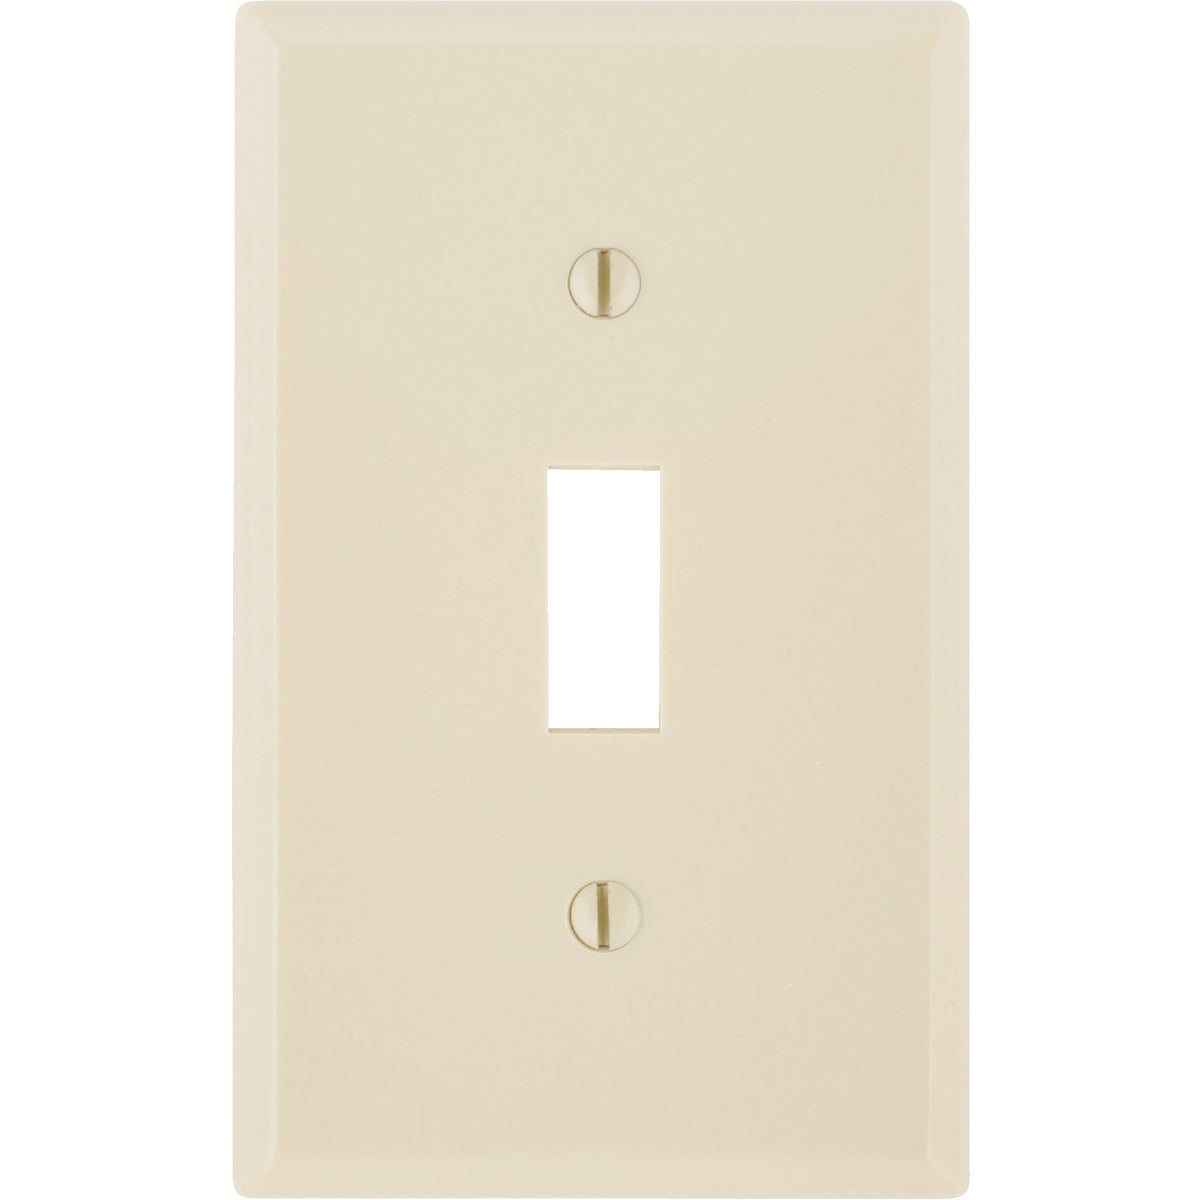 IV 1-TOGGLE WALL PLATE - 86001 by Leviton Mfg Co